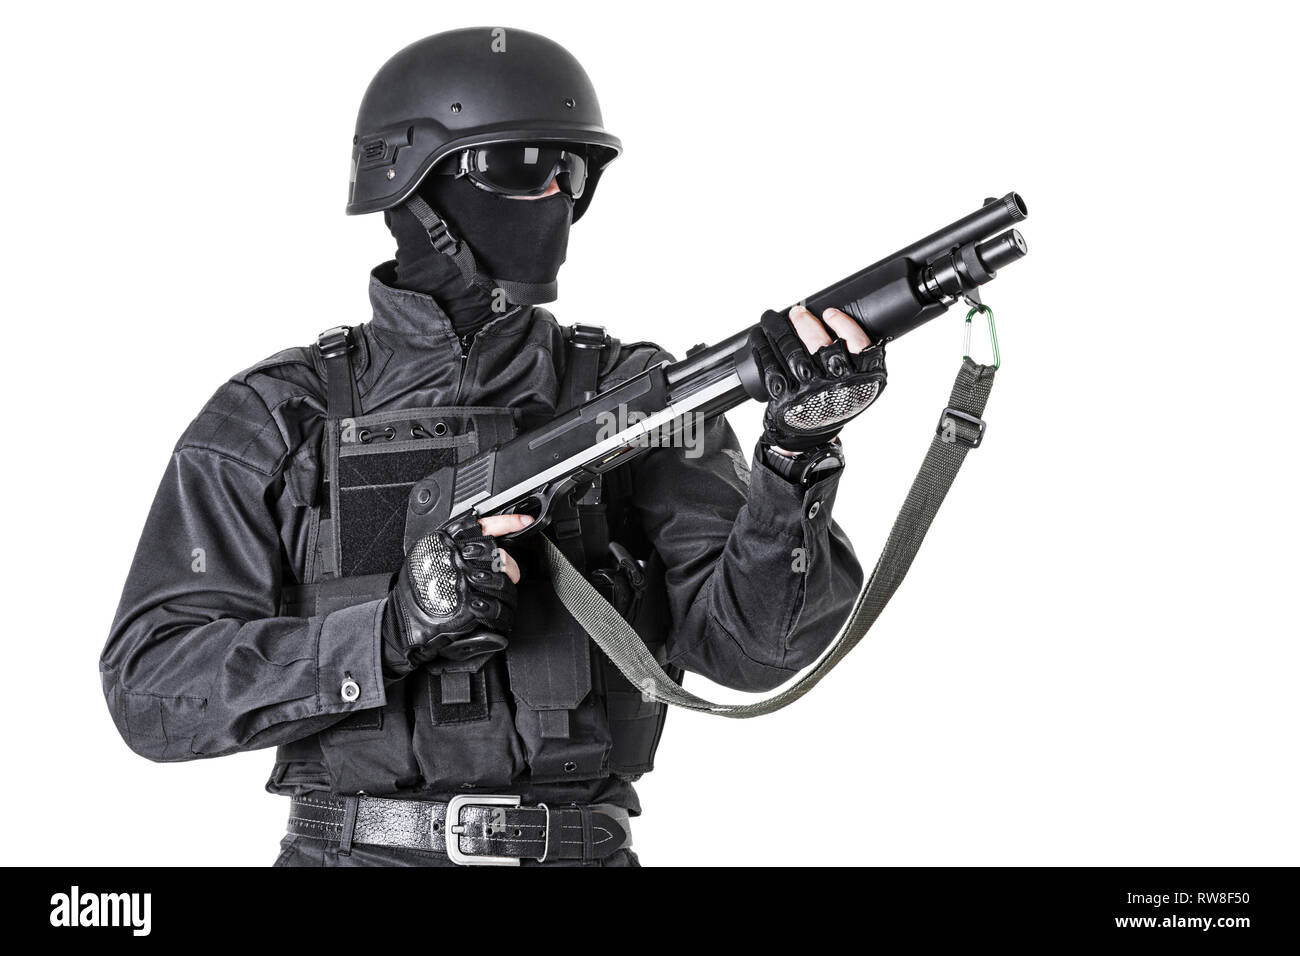 Spec ops police officer SWAT in black uniform with shotgun, studio